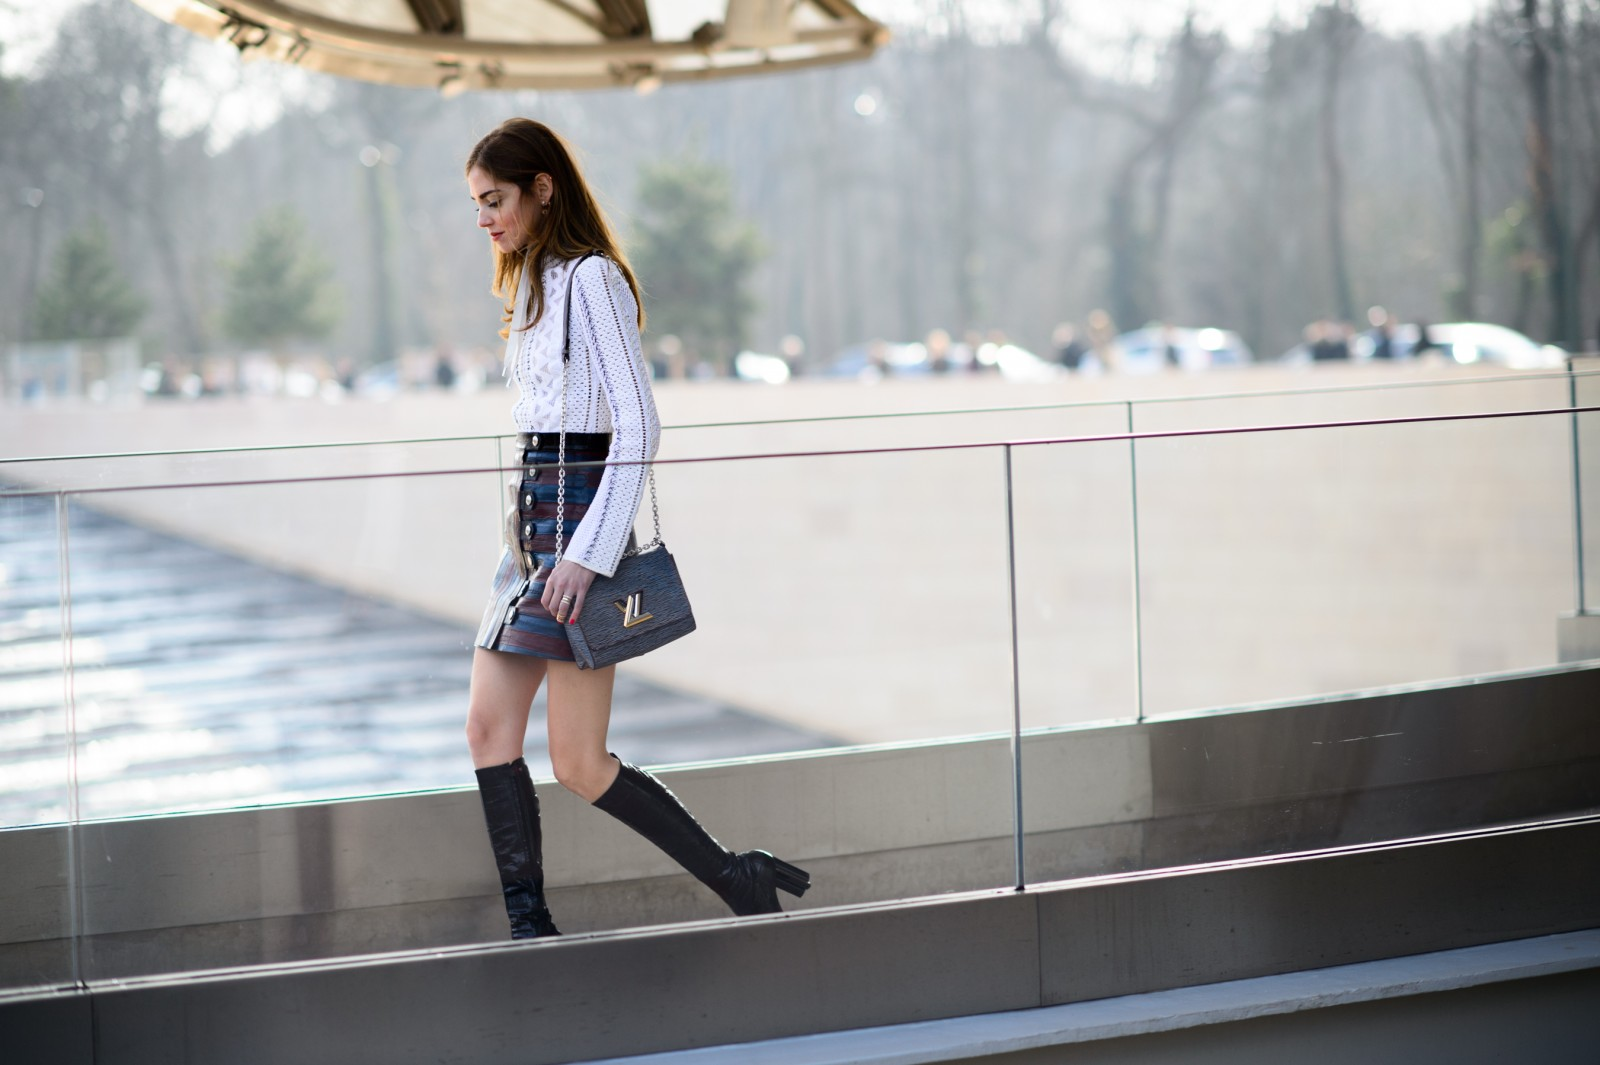 French Chic is all about decoding the Secrets of Paris Fashion, like this Parisian woman who's teamed a tartan miniskirt with knee-high boots but a high-neck, long-sleeved shirt.